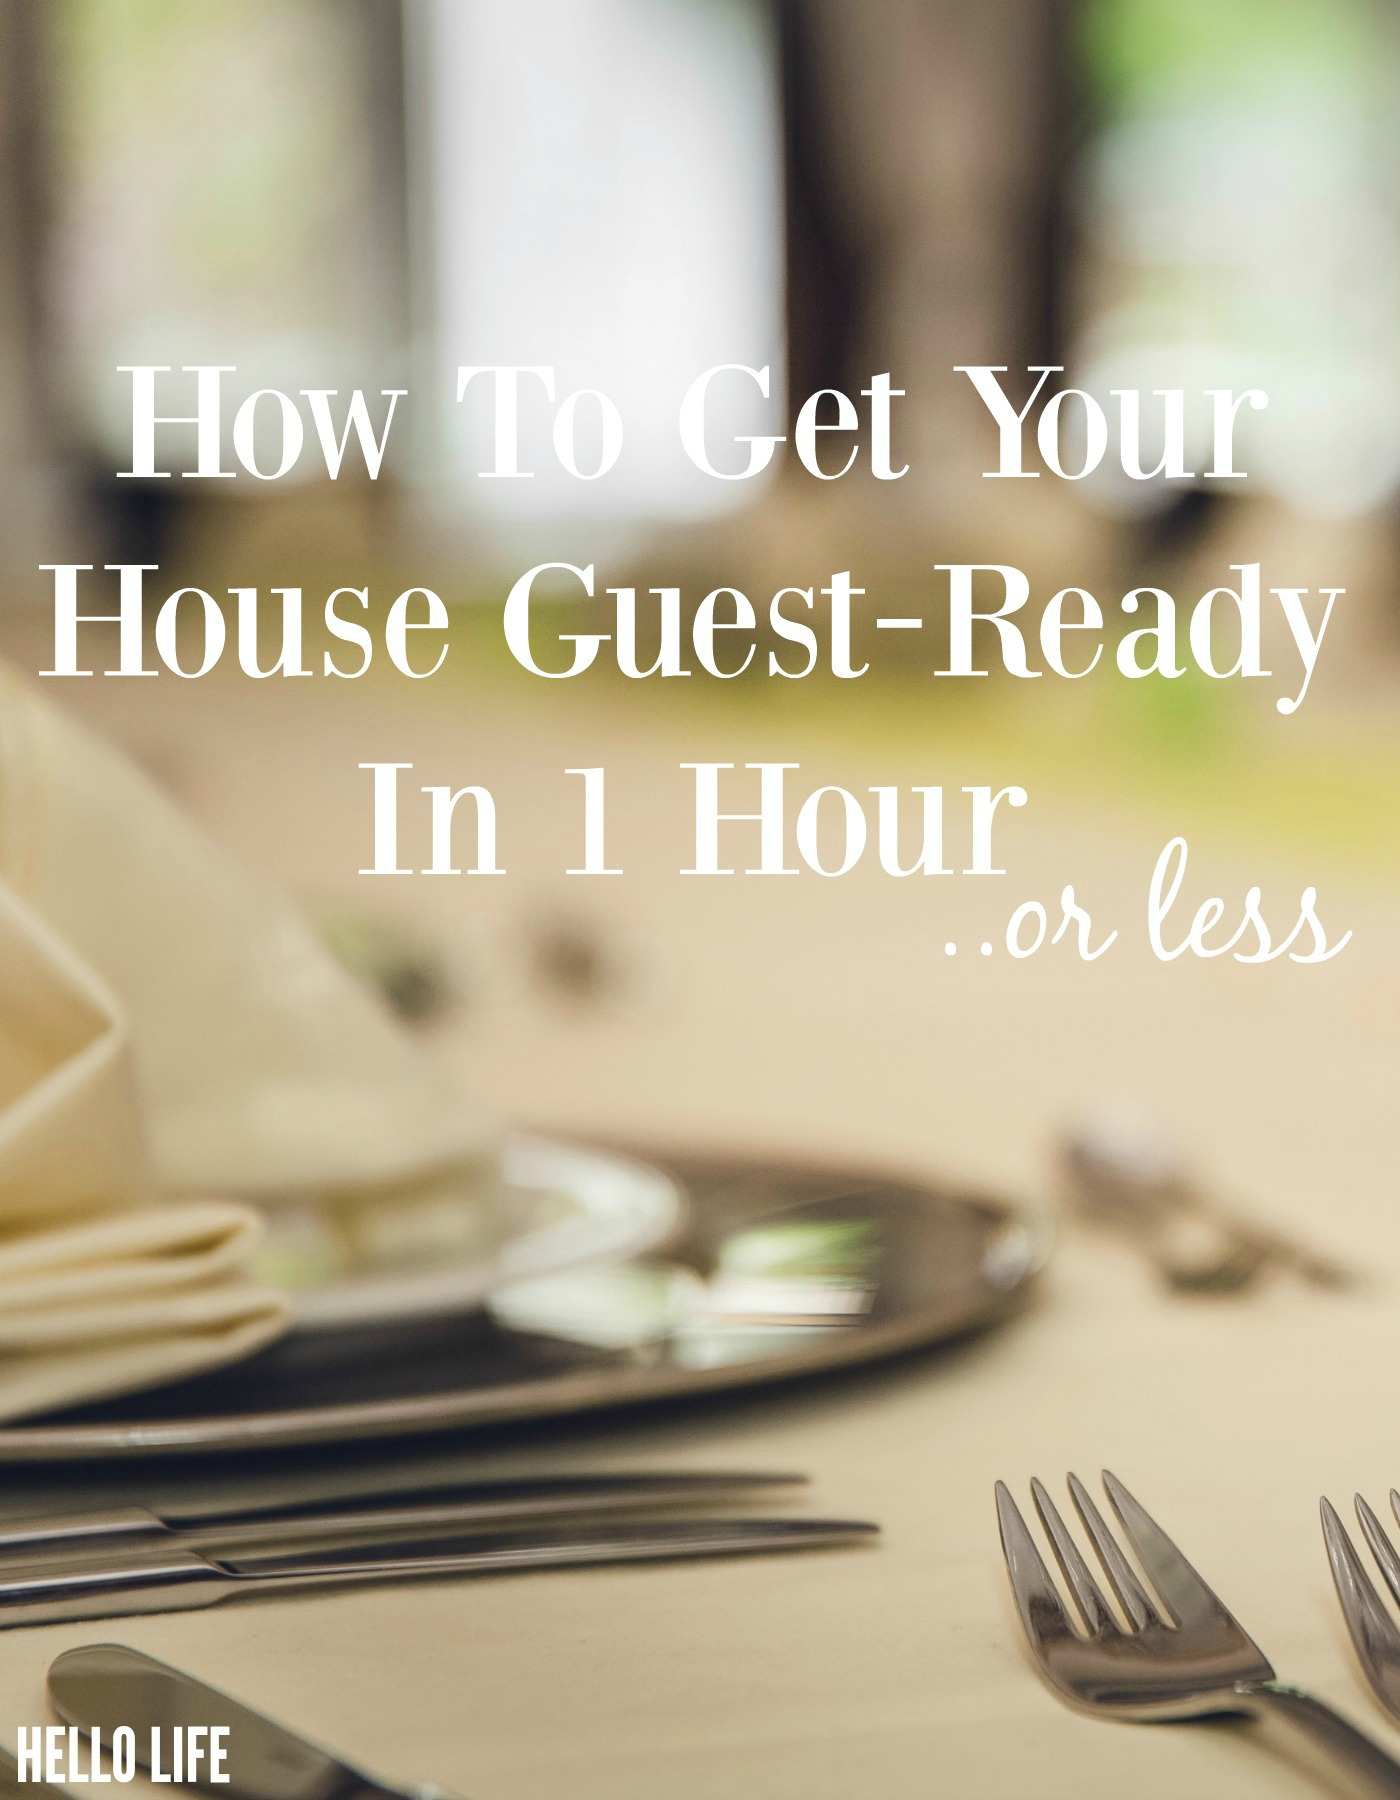 how-to-get-your-house-gues-t-ready-in-1-hour-or-less